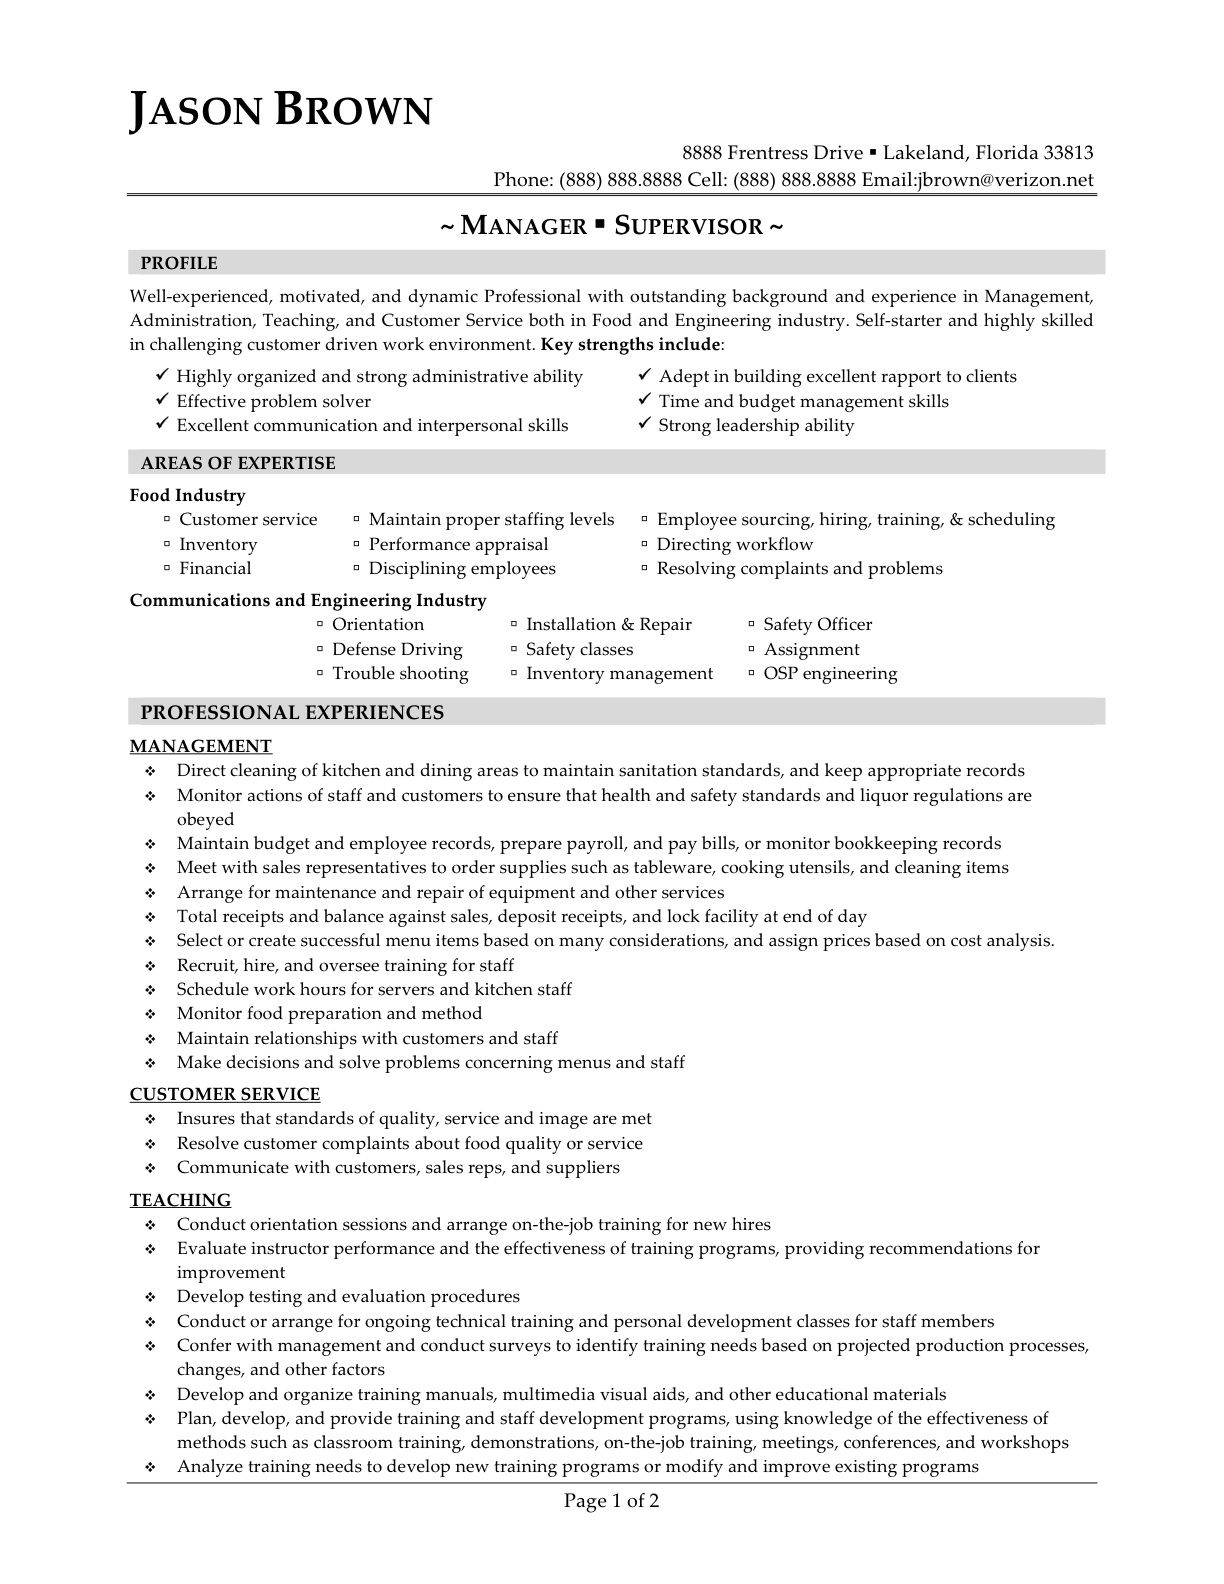 Copy Paste Resume Templates Supervisor Resume Sample Free Call Center Supervisor Resume Sample